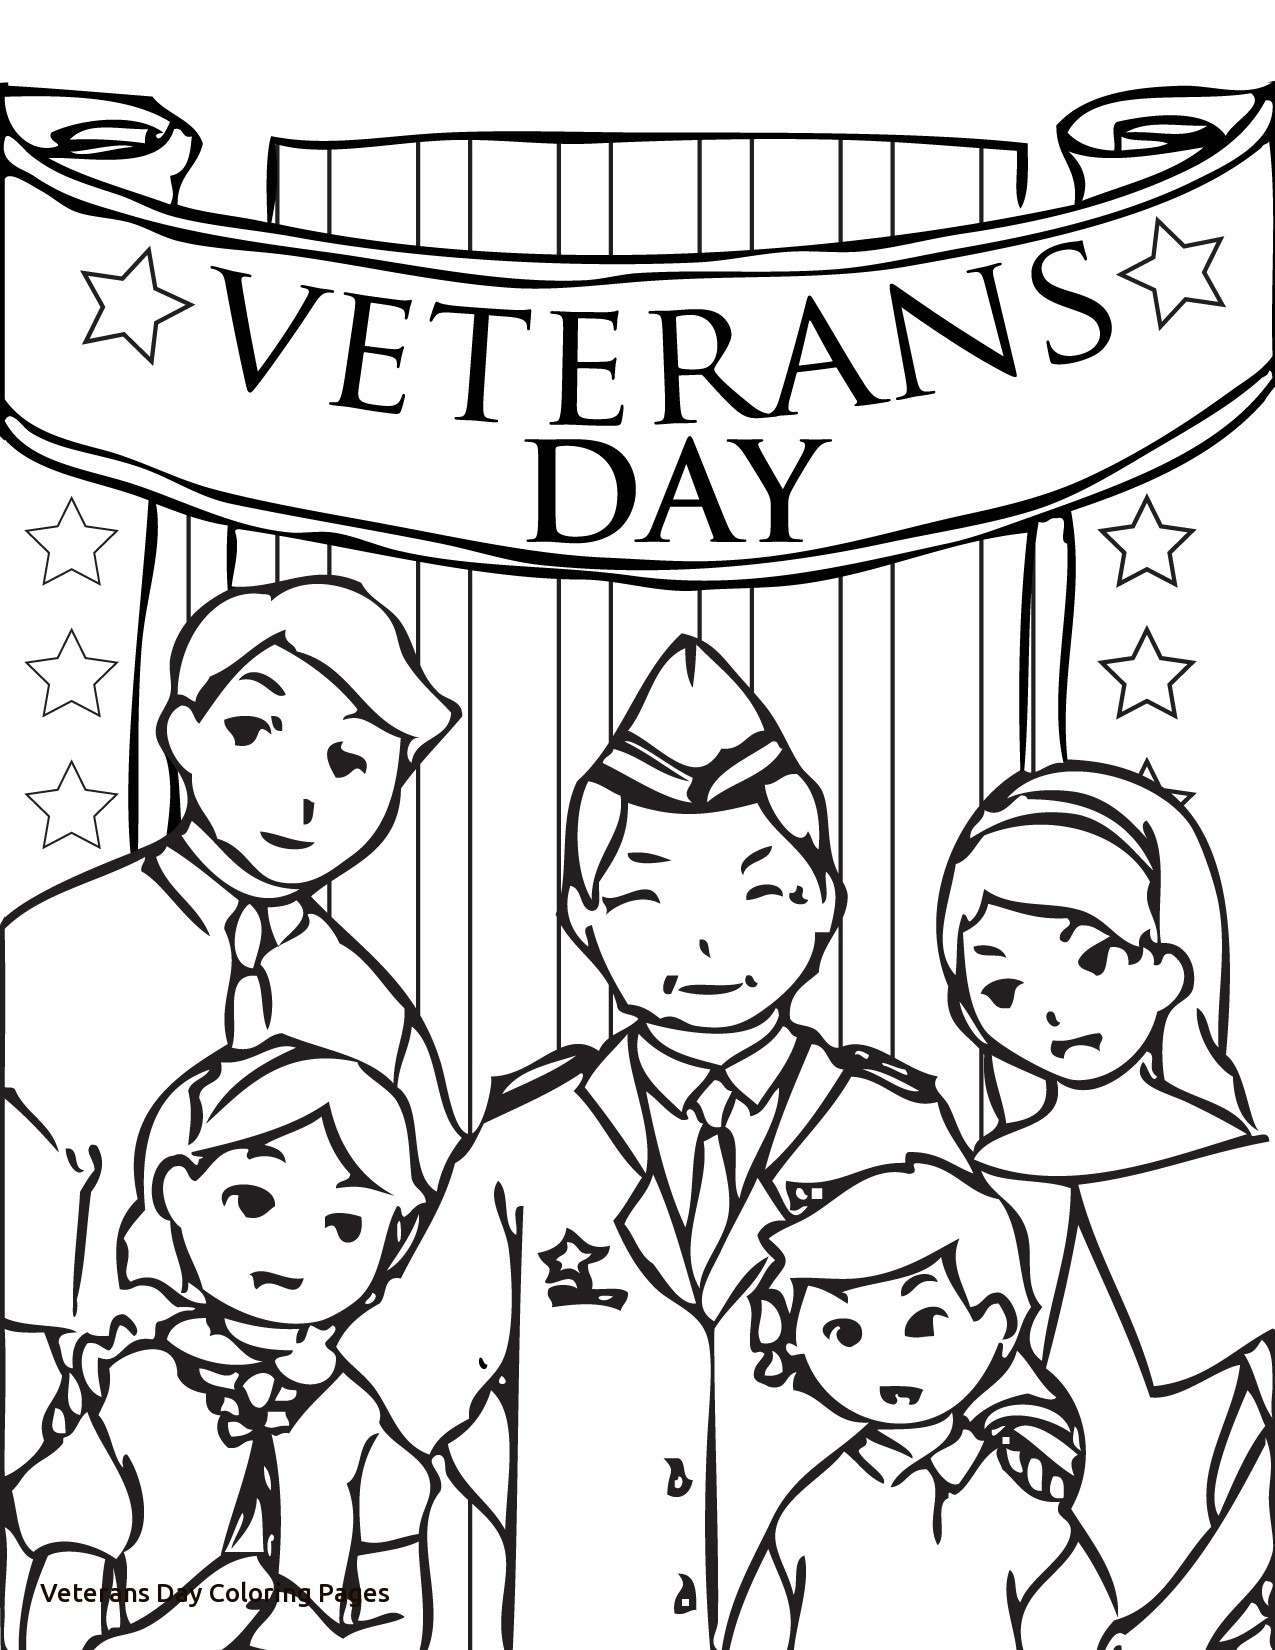 Christmas Coloring Pages For Veterans With Day Pdf